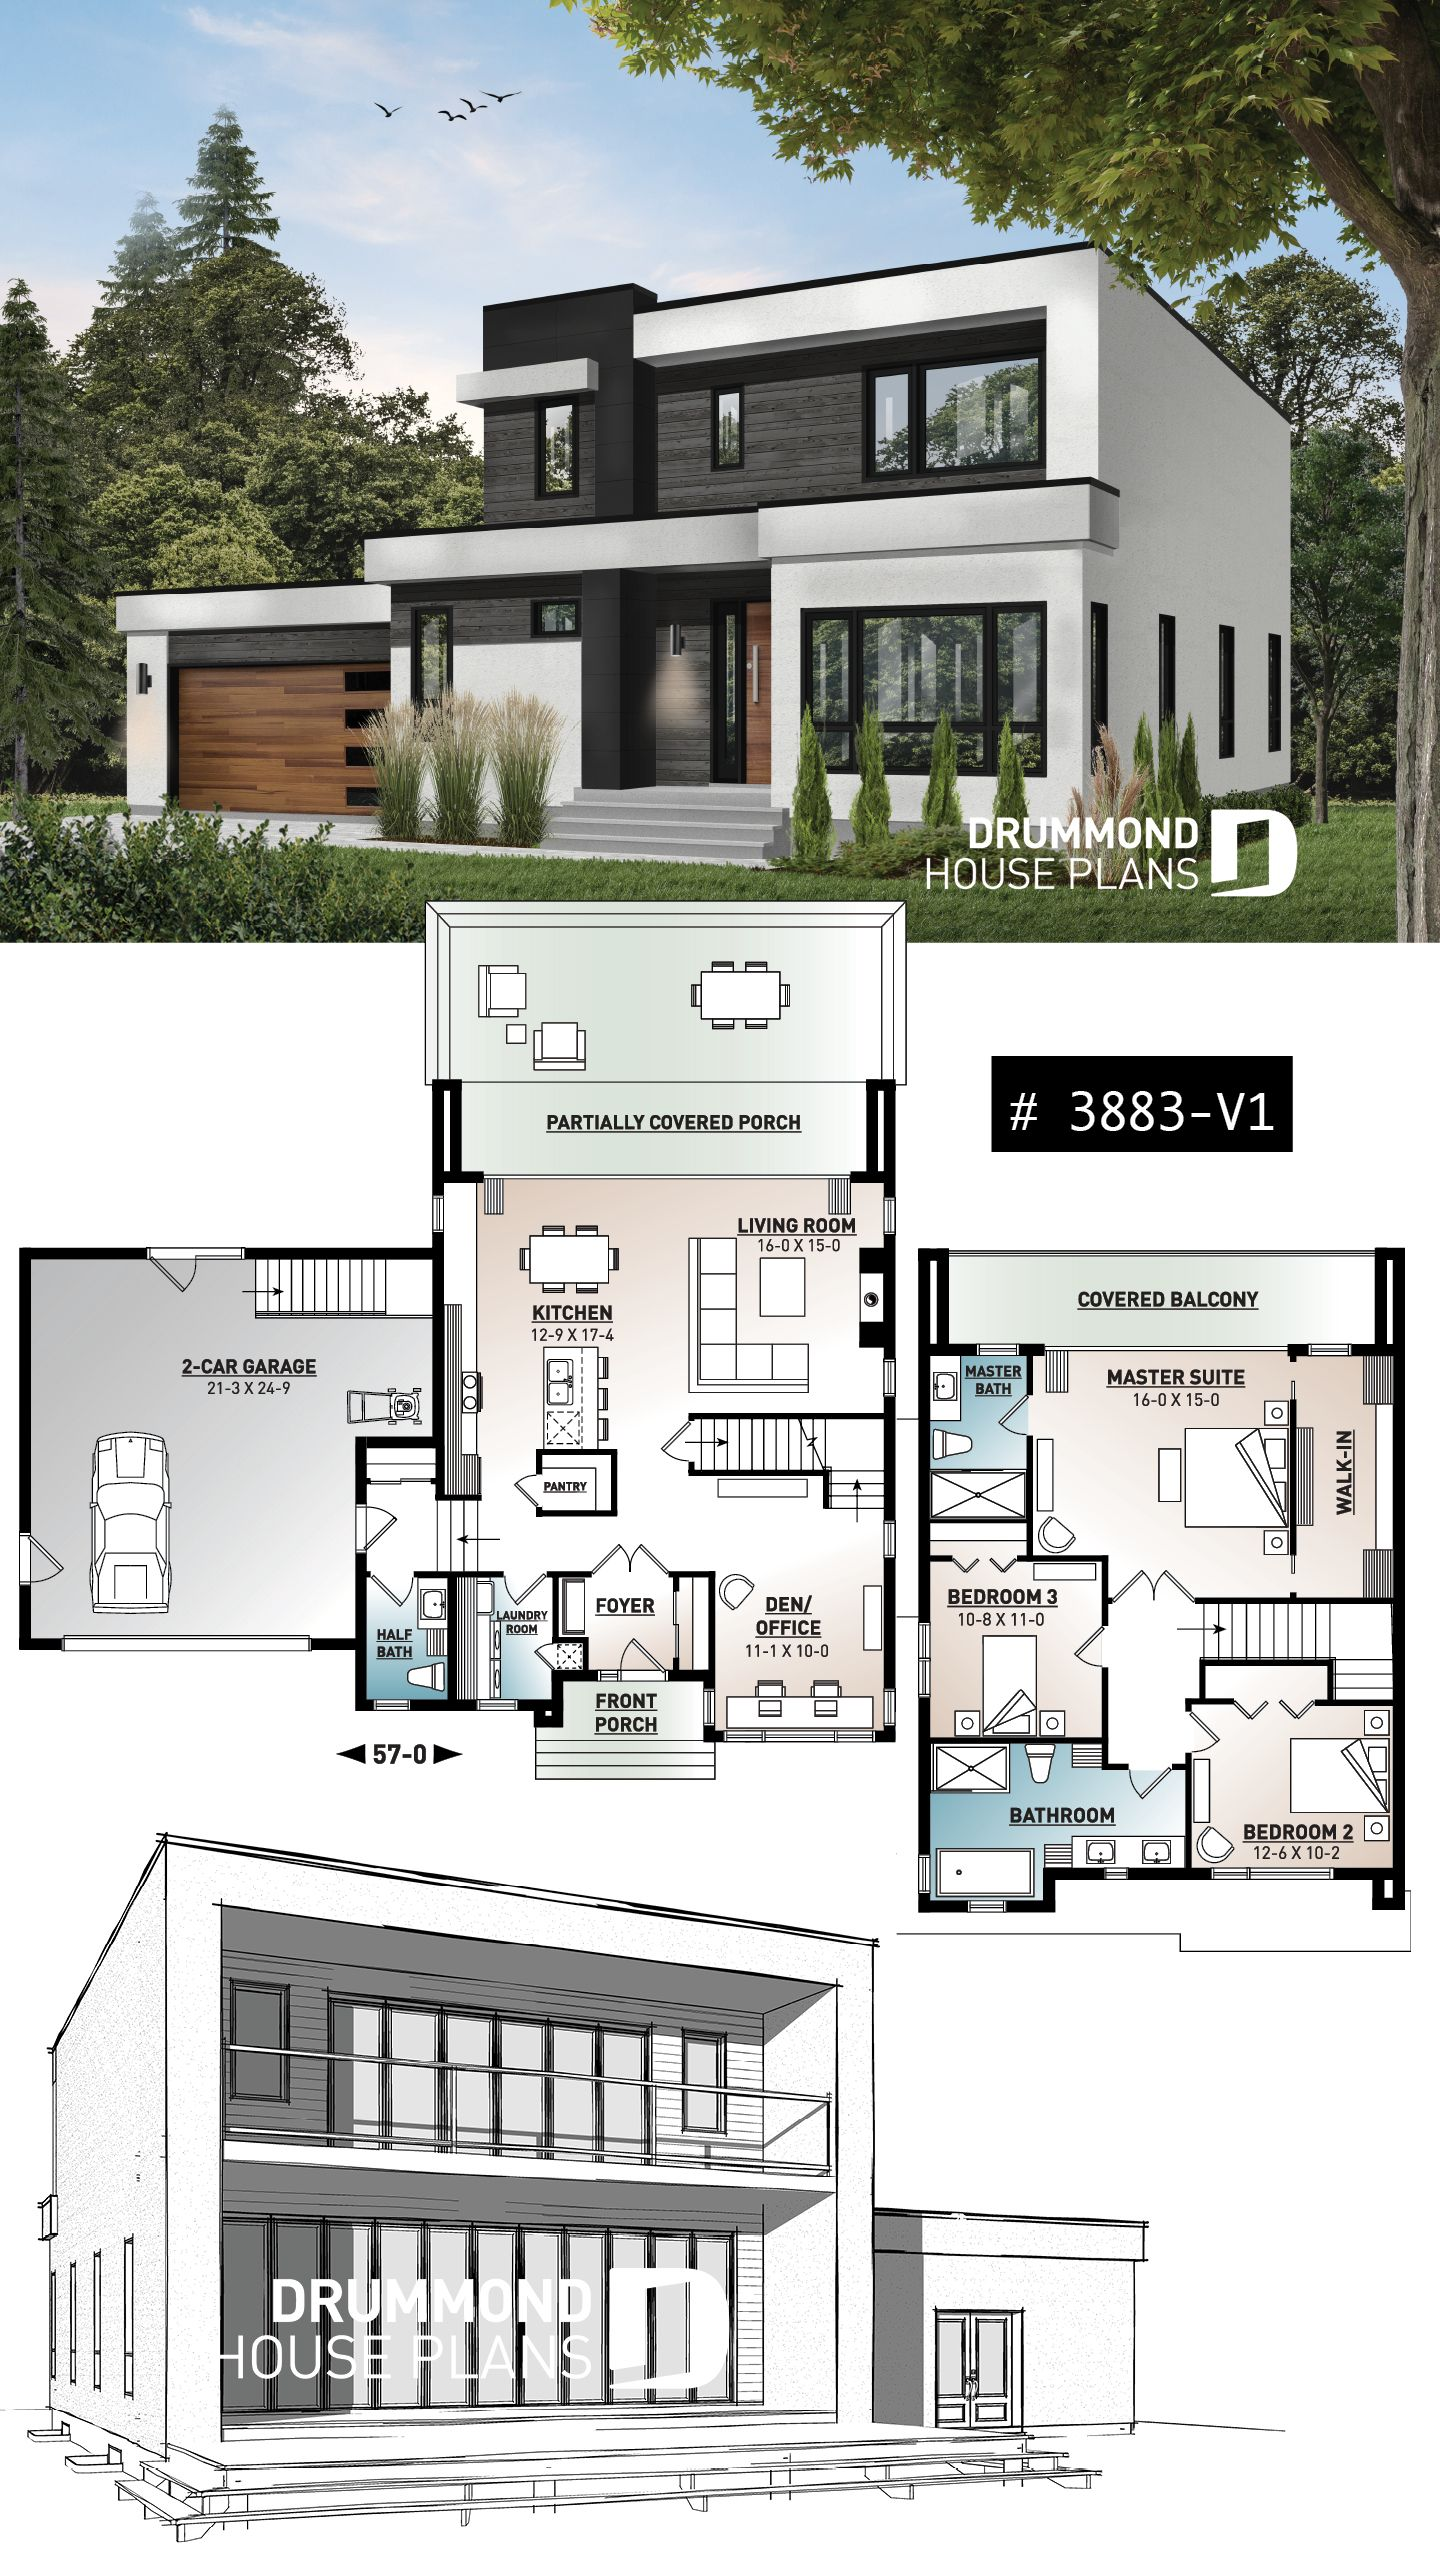 to bedroom cubic style design home office lots of natural lights also best houses images in rh pinterest